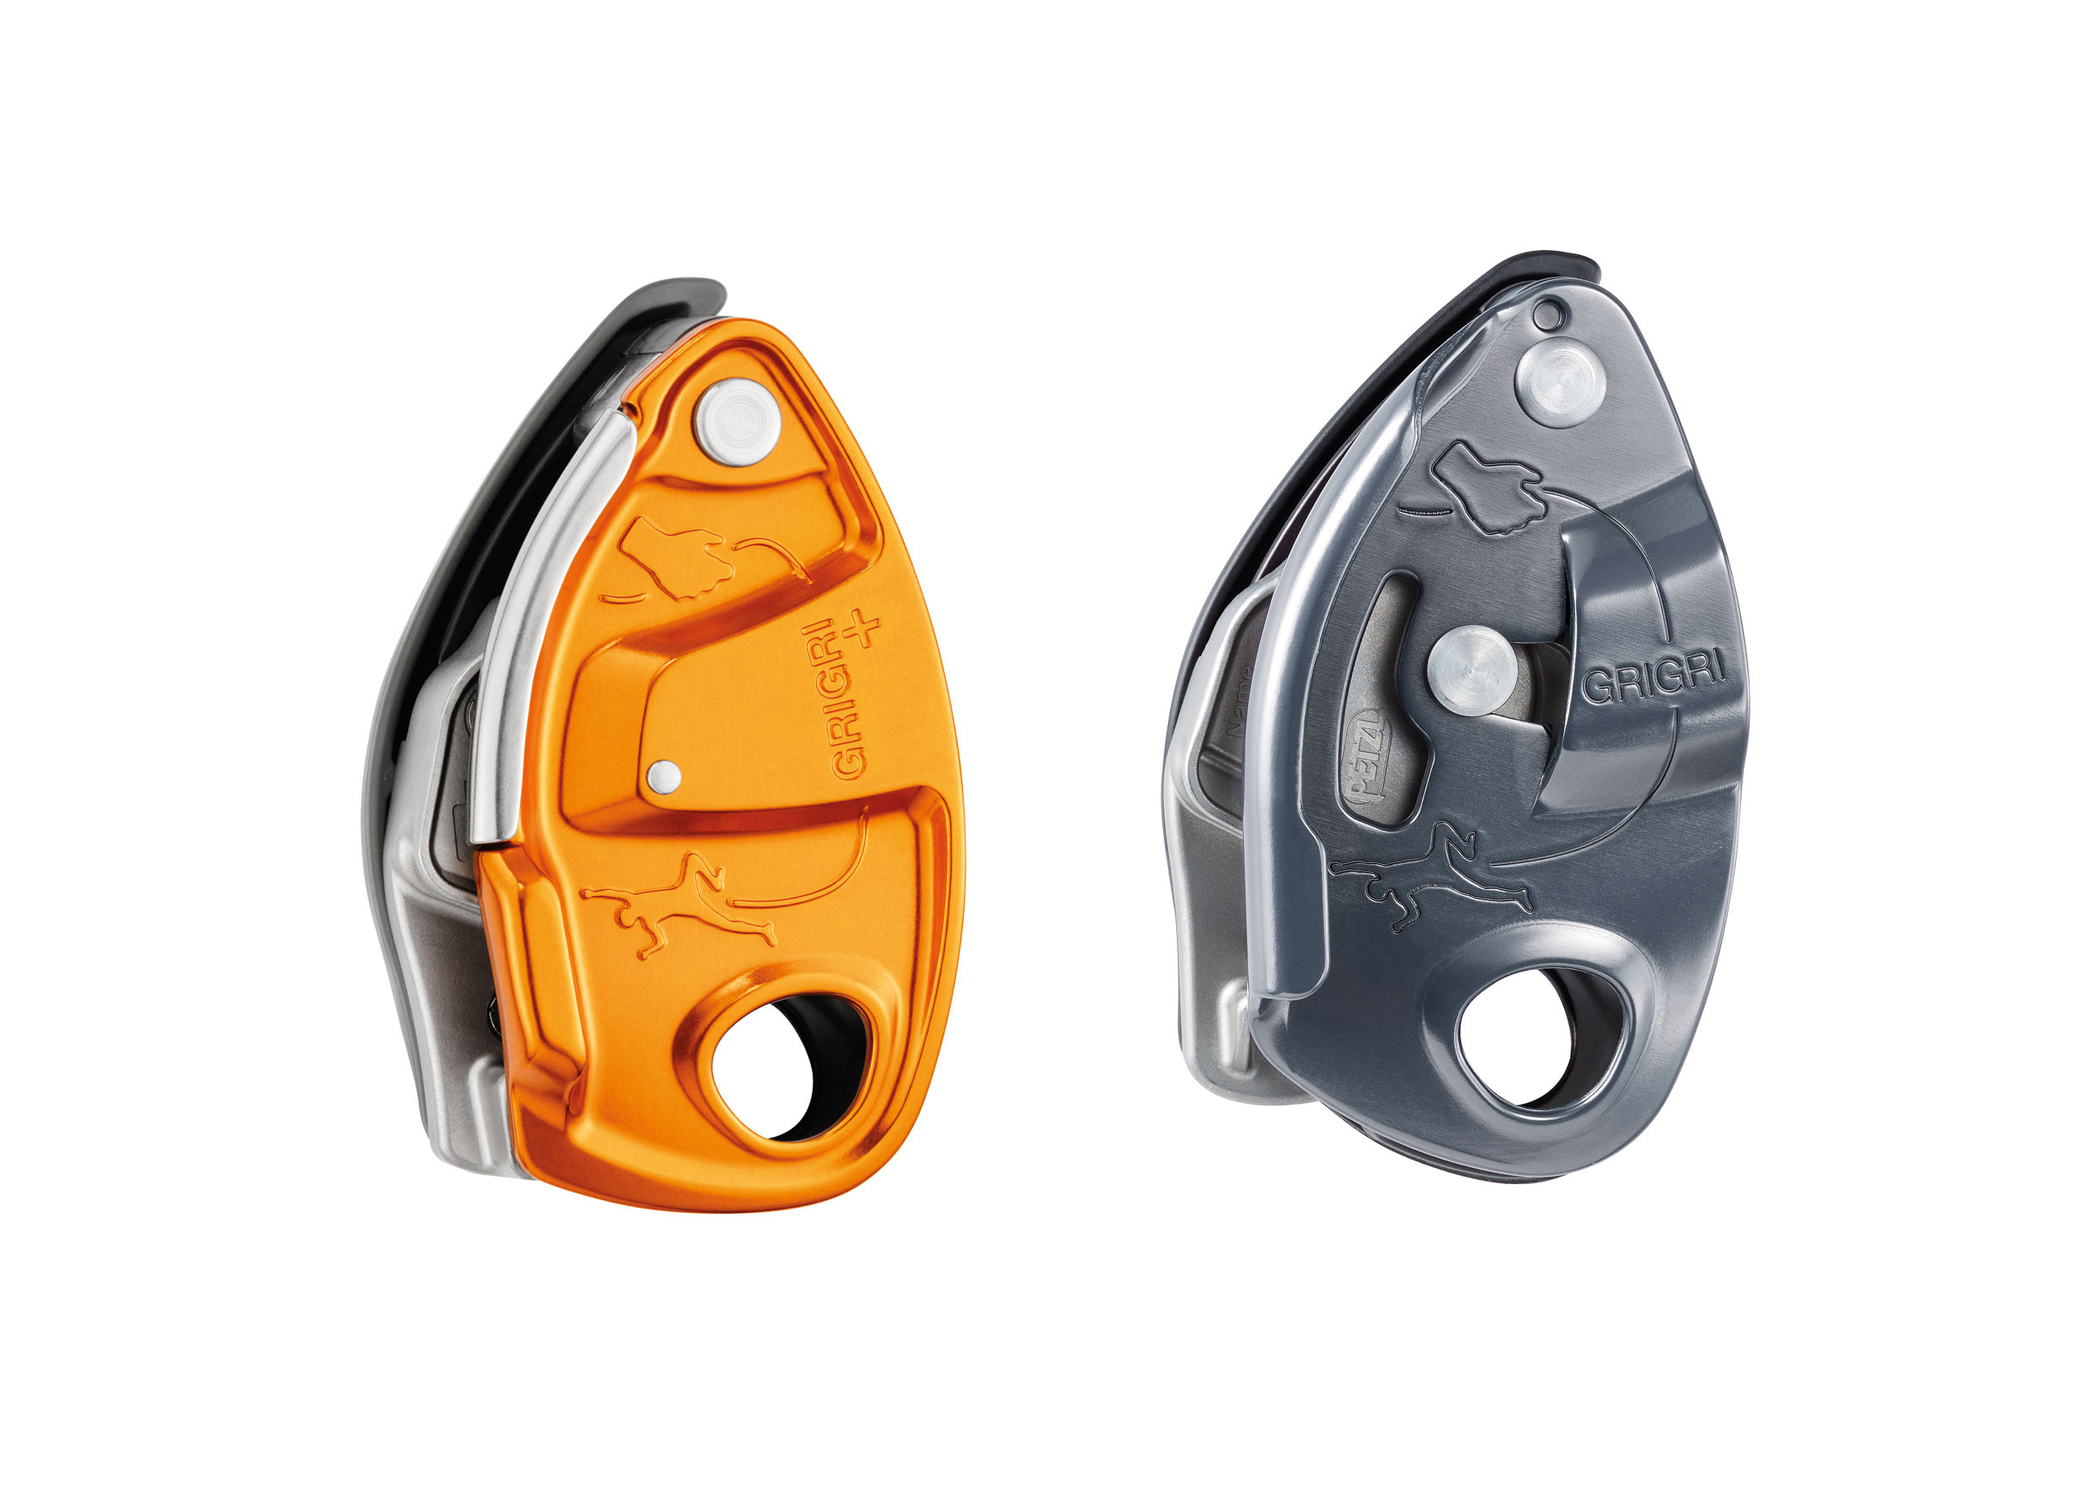 Petzl GRIGRI+ and GRIGRI: Comparison Review